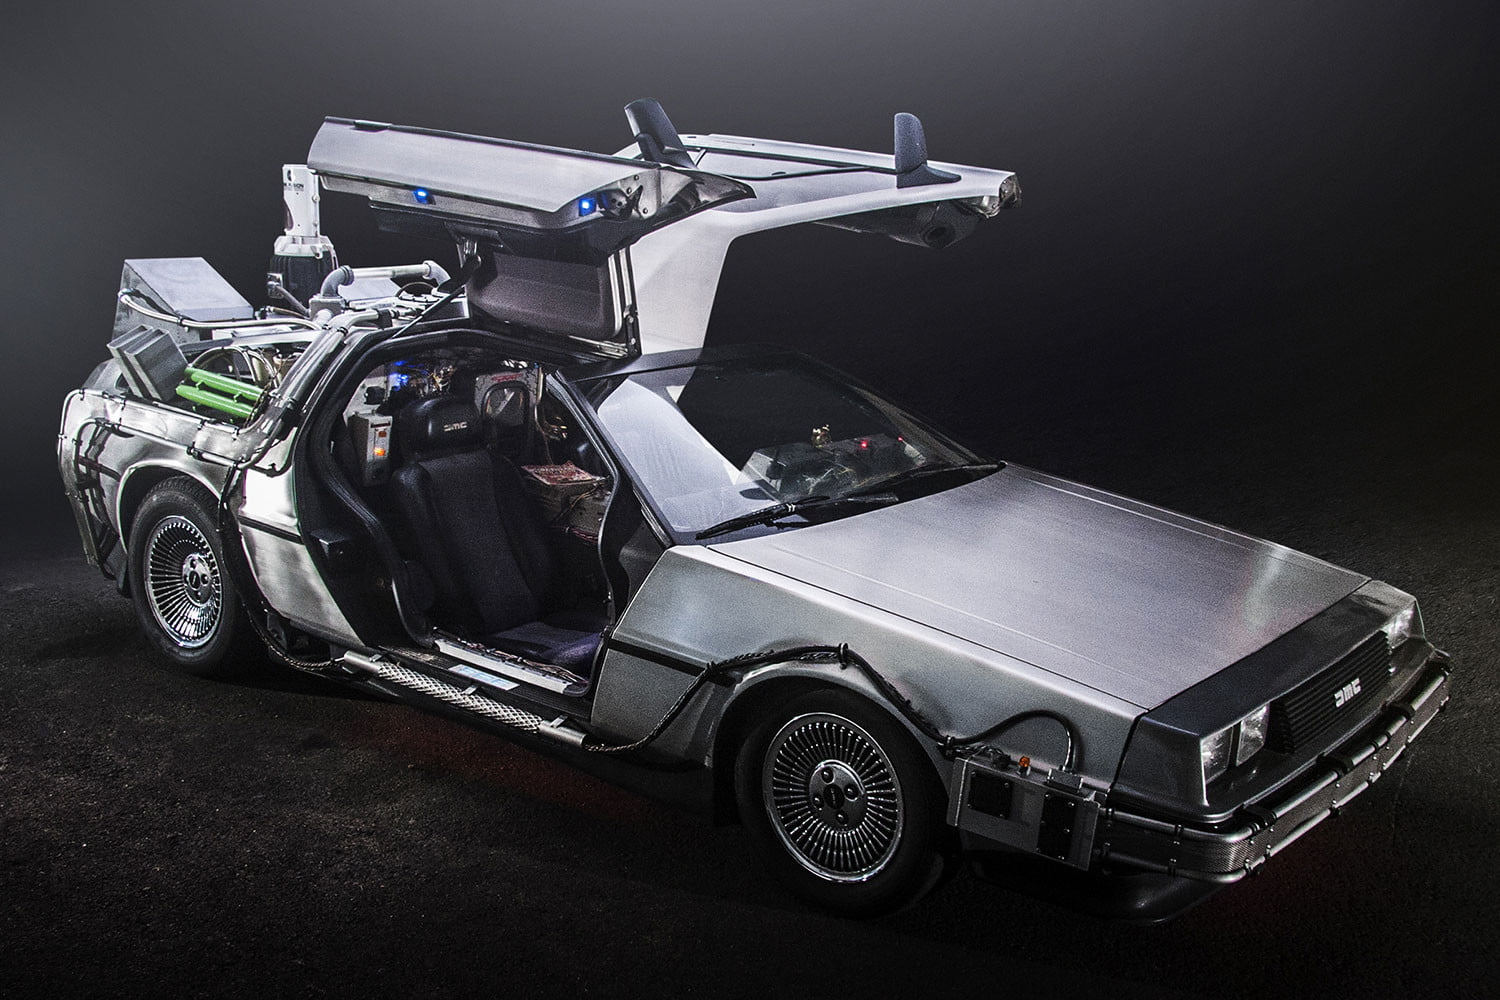 The Best Futuristic Cars From Science Fiction Movies